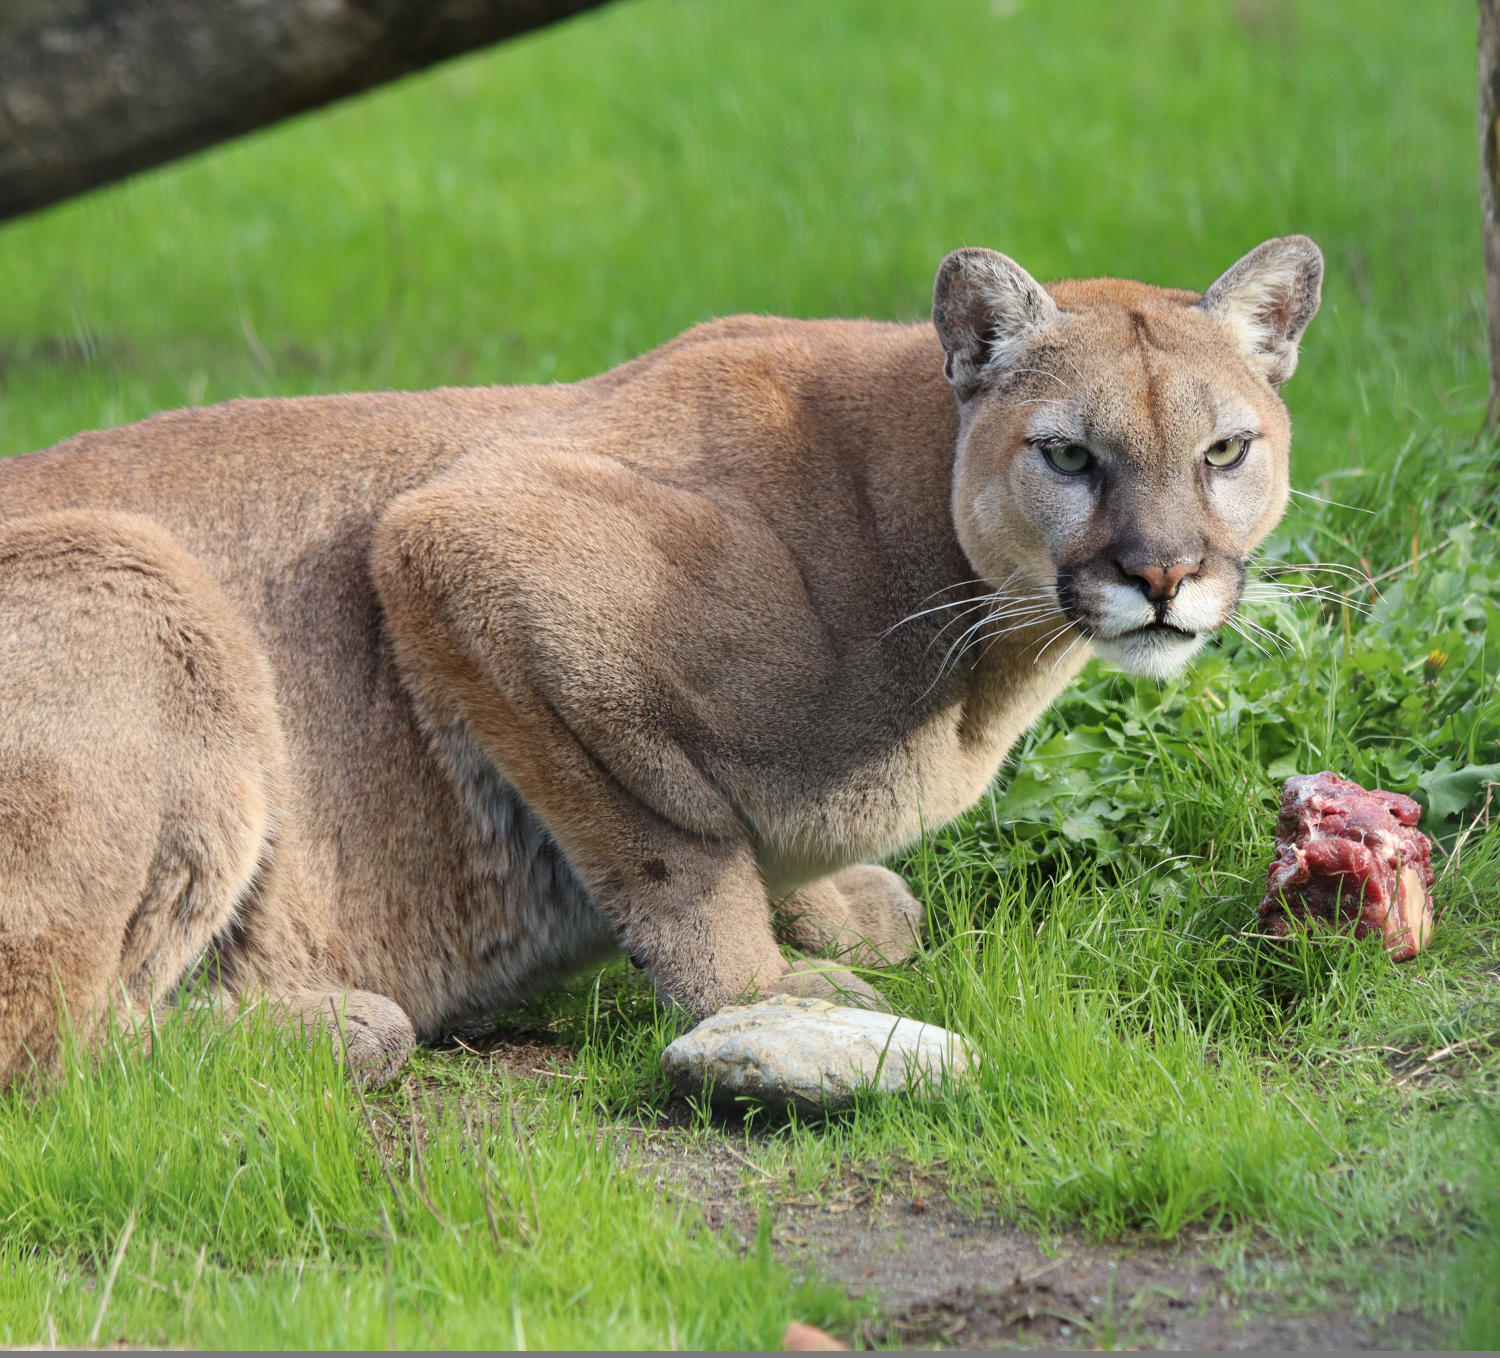 cougar crouching contemplating food